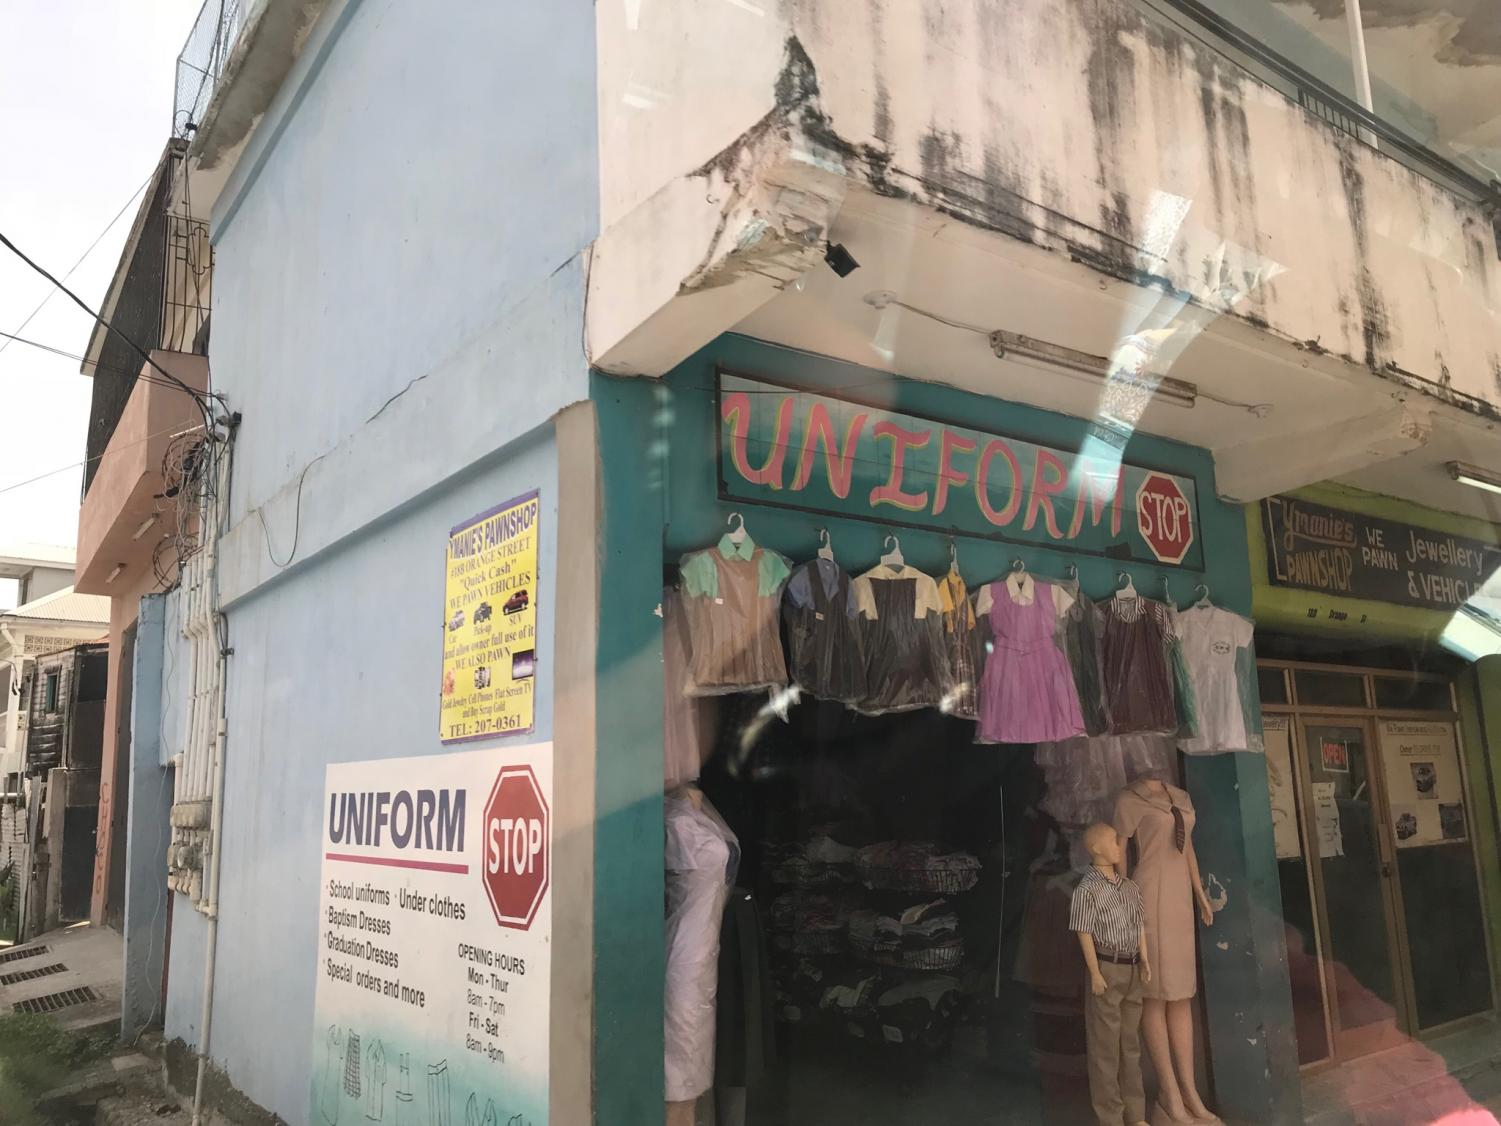 A uniform store in Belize City, Belize. (Photo credit to my dad)